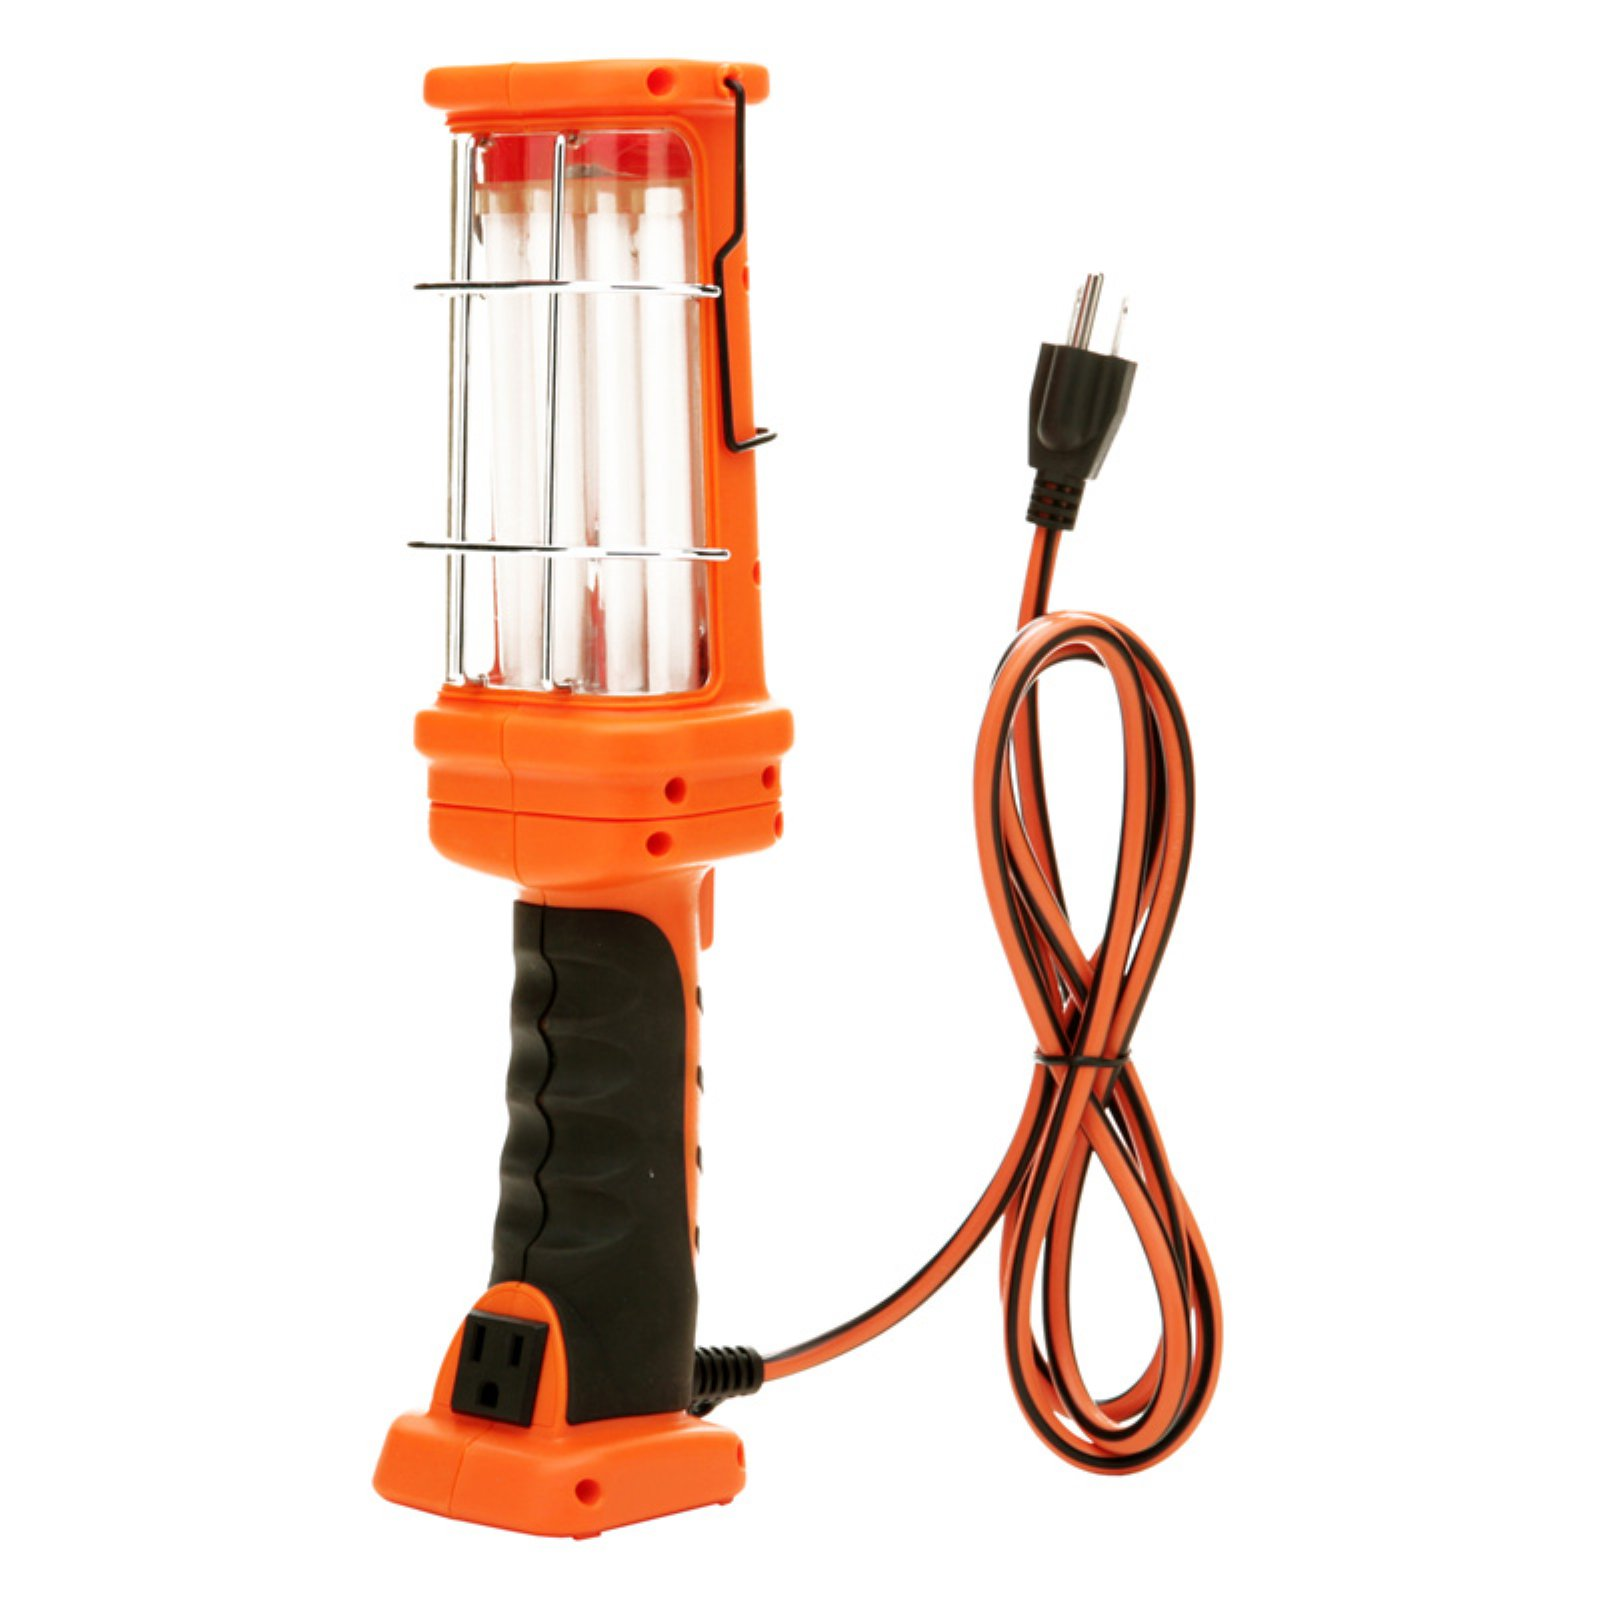 Woods 26-Watt Fluorescent Hand Held Work Light with Grounded Outlet, 6-Foot Cord, Orange